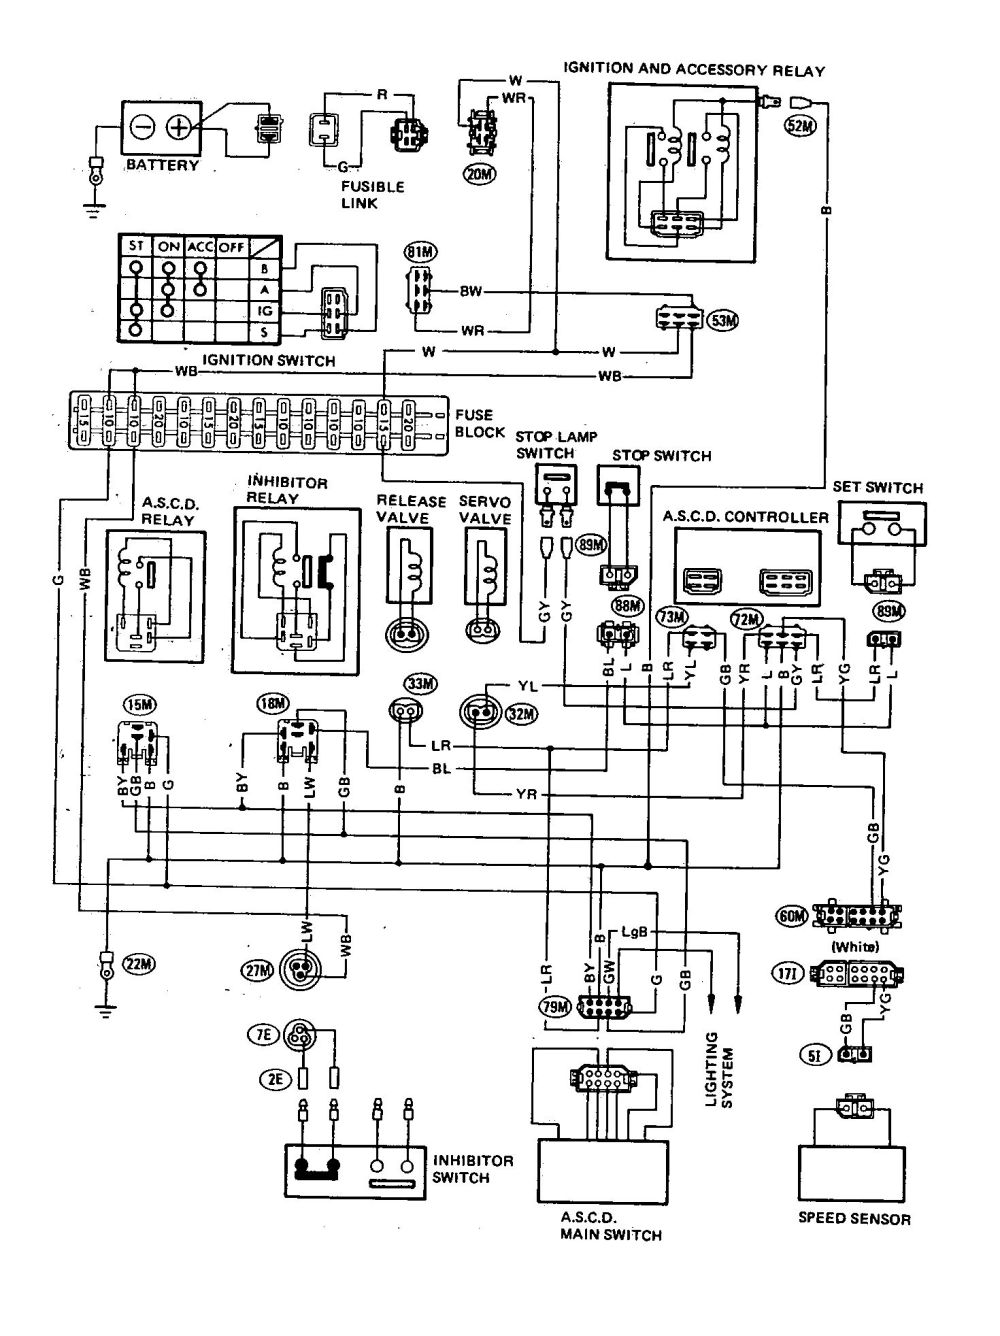 medium resolution of  datsun 200sx 1980 wire diagram automatic speed control devixe lg cassette air conditioner error codes 1470 wiring diagram together with lg mini split